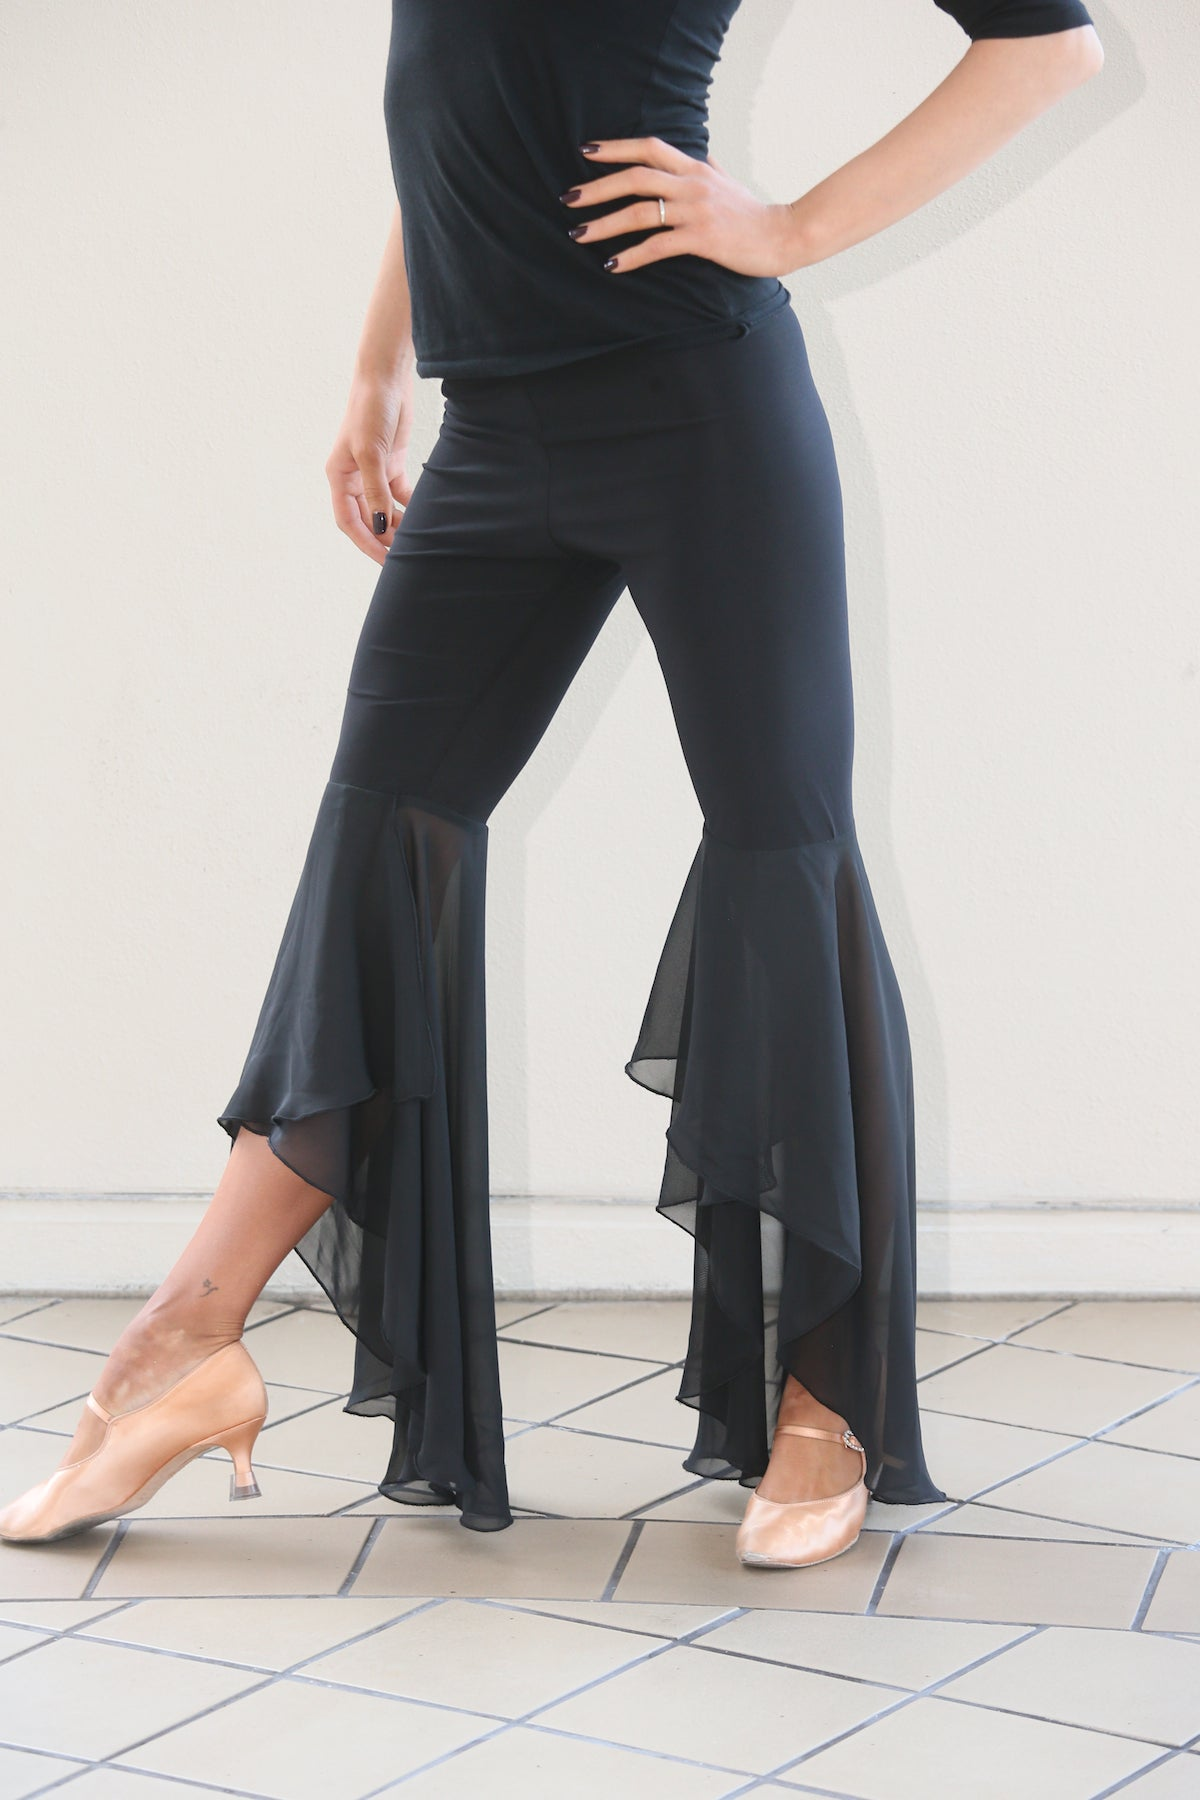 Ladies Dance Pant with Chiffon Wrap Hem - RP103 - Pants by Randall Designs